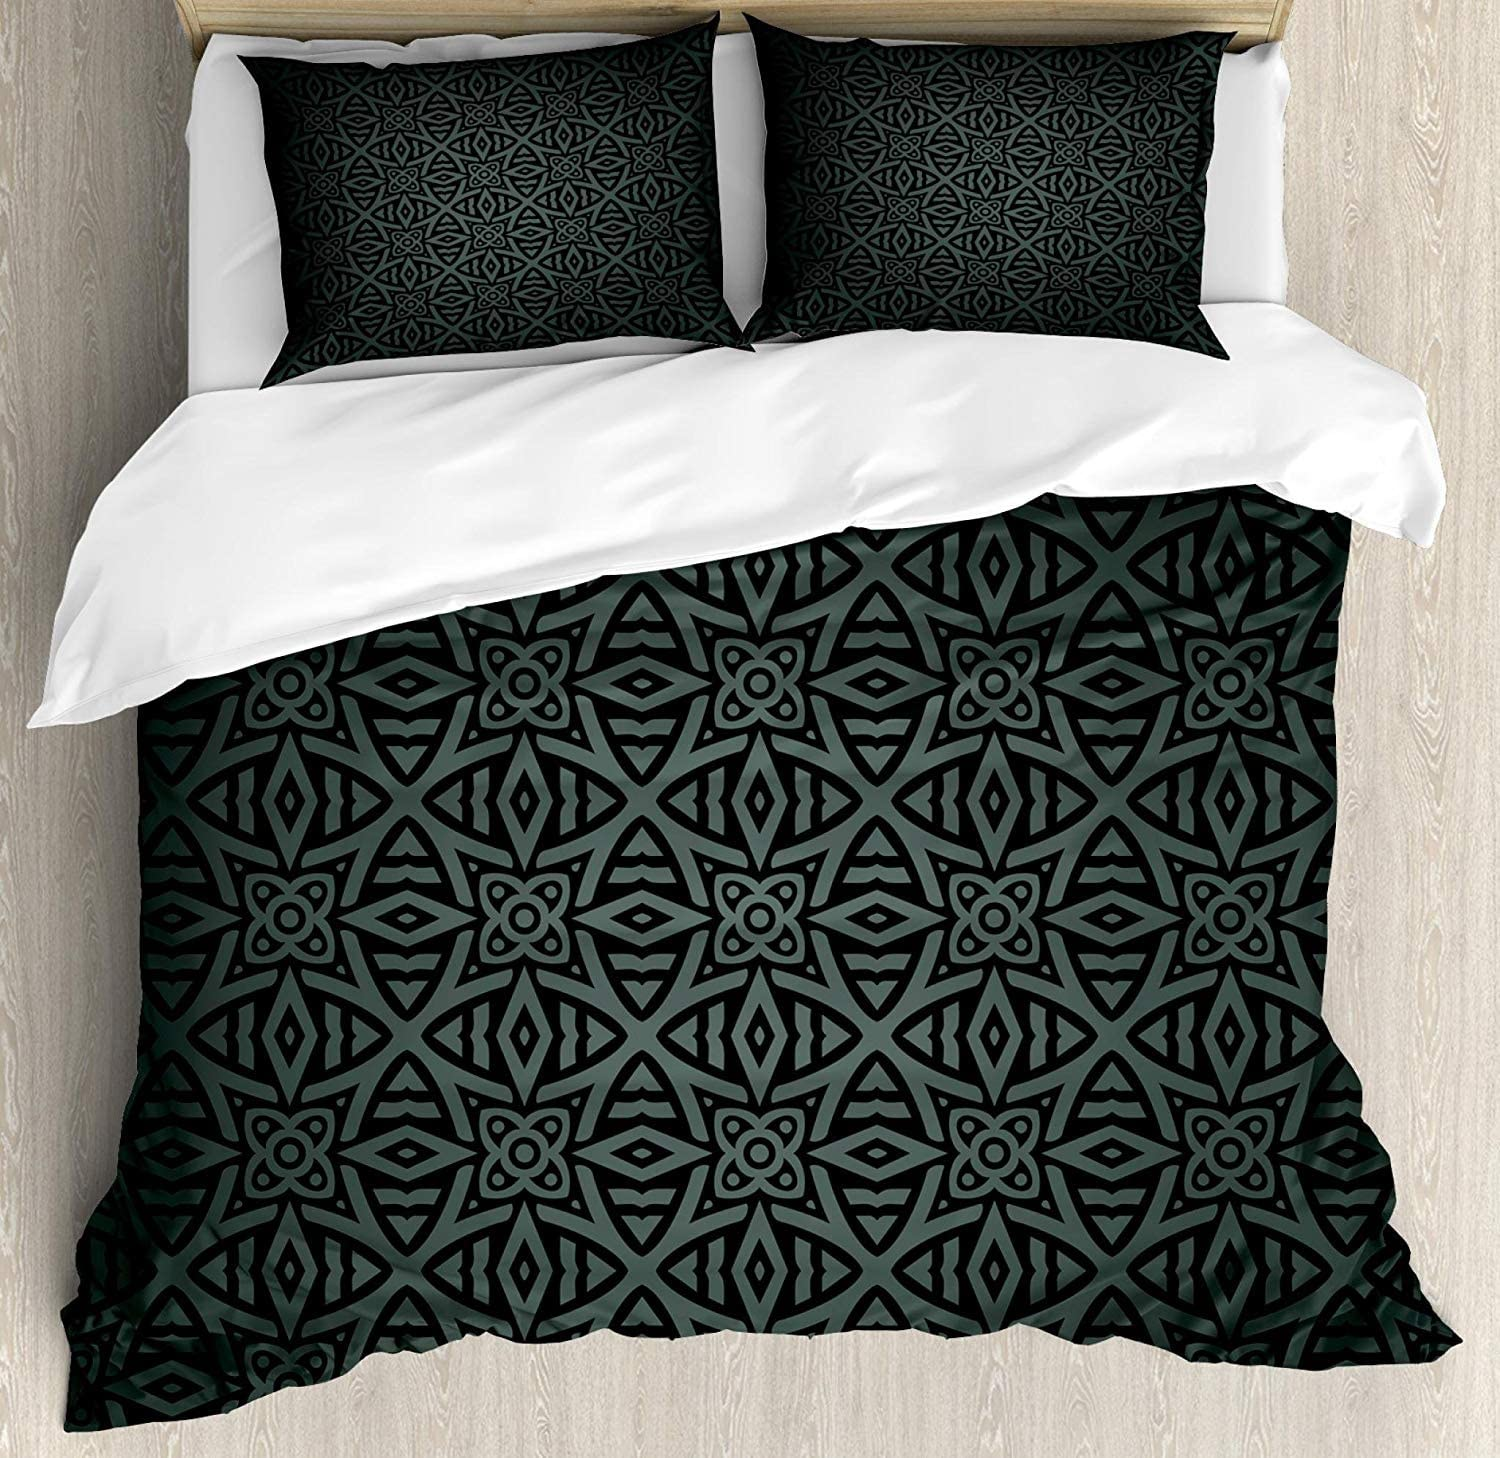 Dark Grey 3 Pieces Duvet Cover Set, Medieval Folkloric Ornament Celtic Pattern Vintage Style Abstract Floral Circles, Decorative Bedding Sets, Comforter Cover with 2 Pillow Shams, Black Grey,King